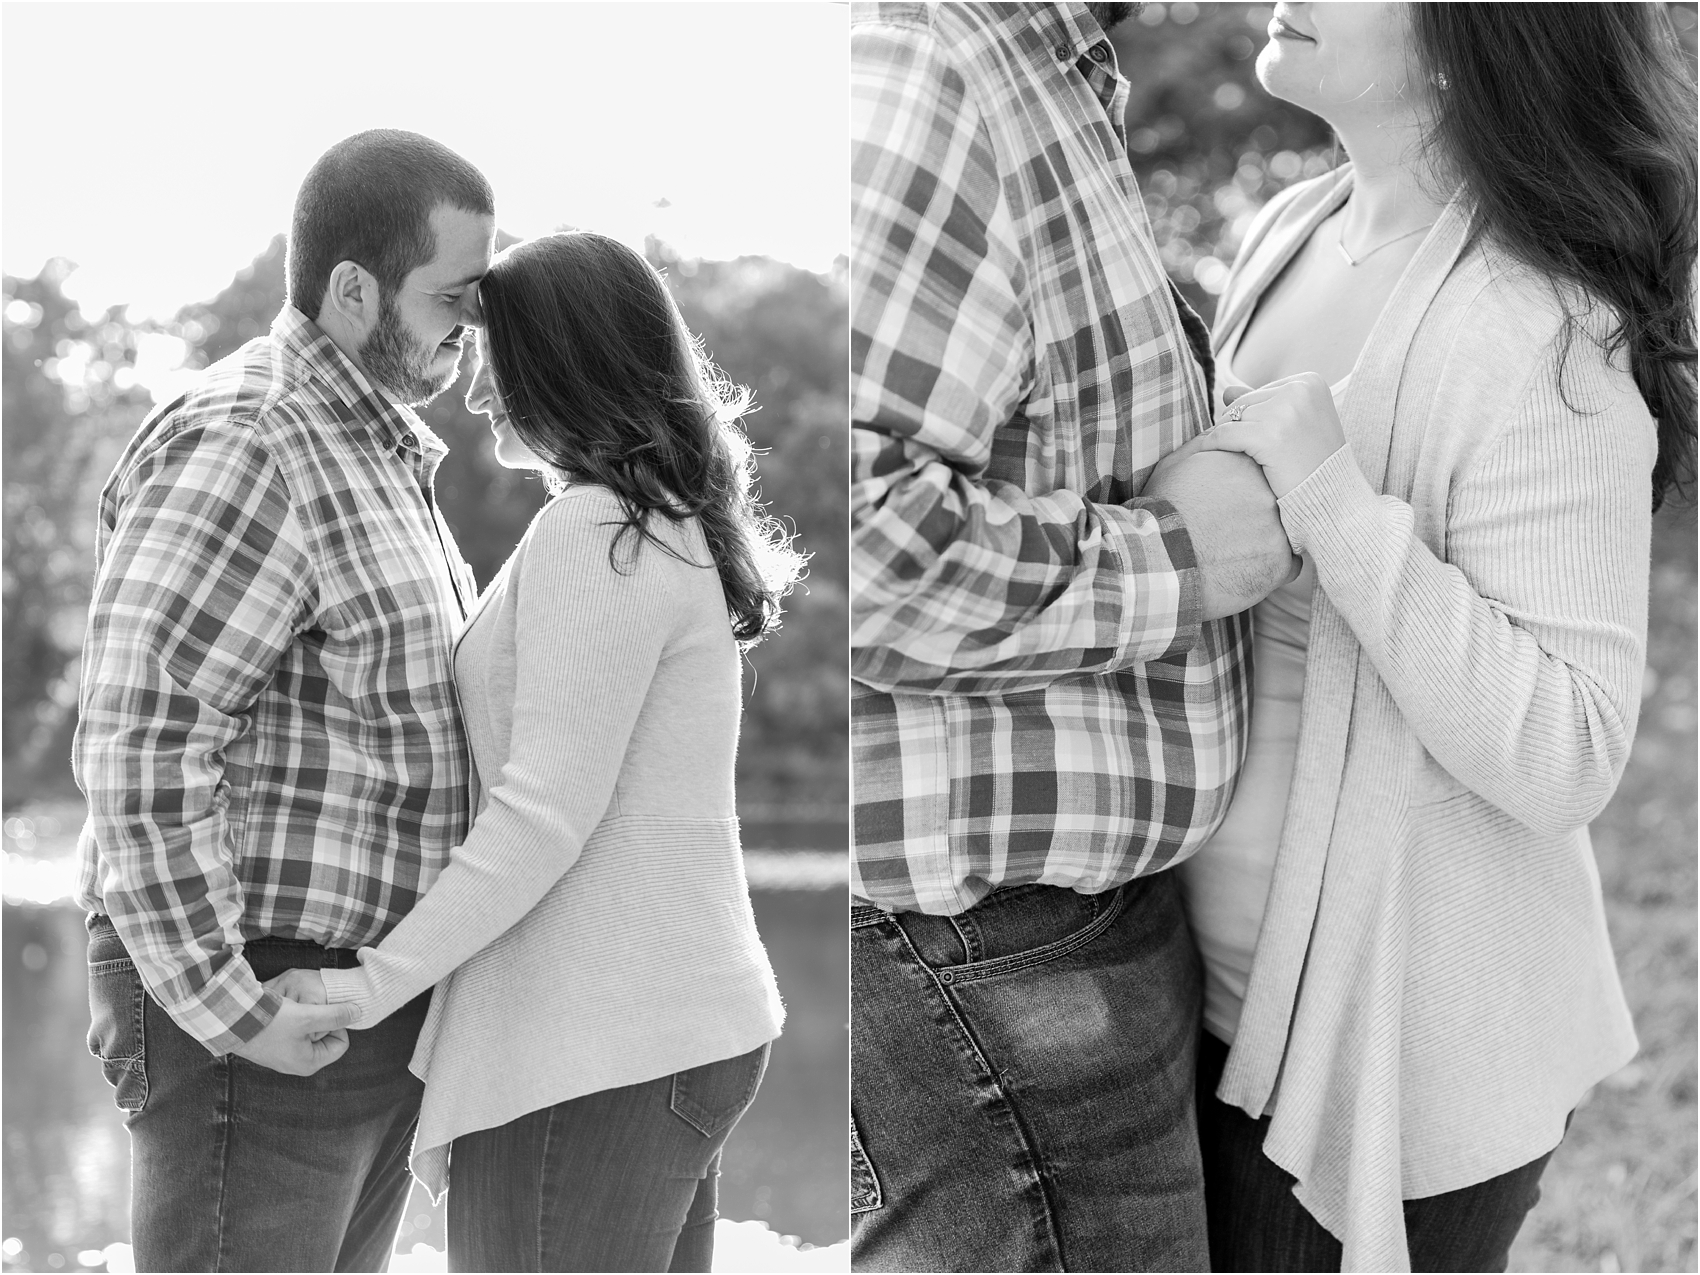 candid-romantic-summer-engagement-photos-at-hidden-lake-gardens-and-black-fire-winery-in-tipton-mi-by-courtney-carolyn-photography_0021.jpg